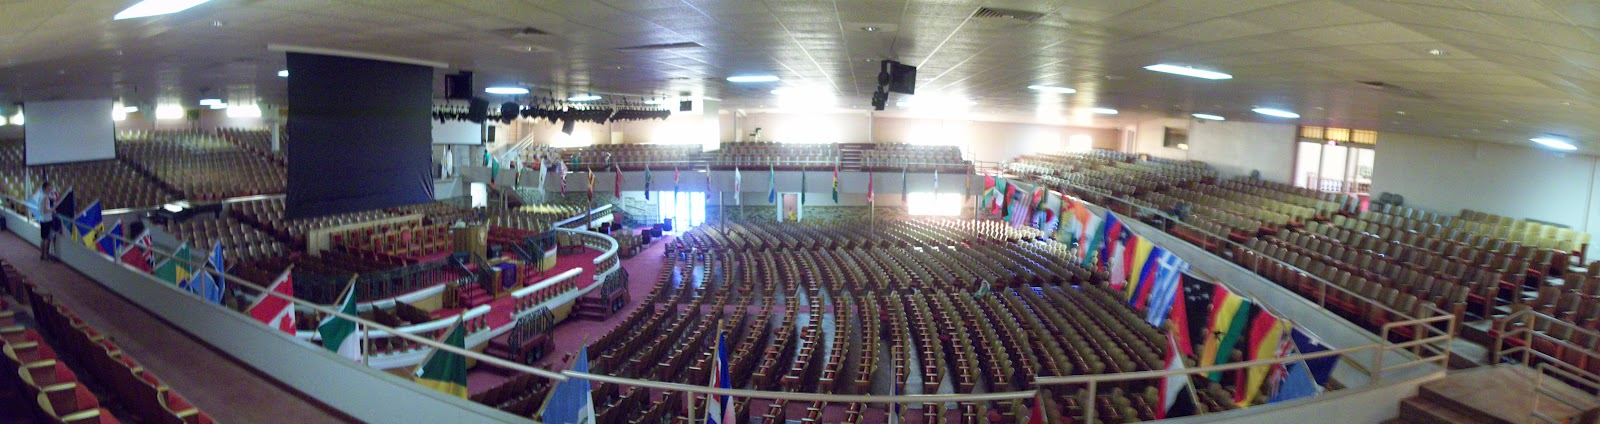 church of pentecost hq ghana